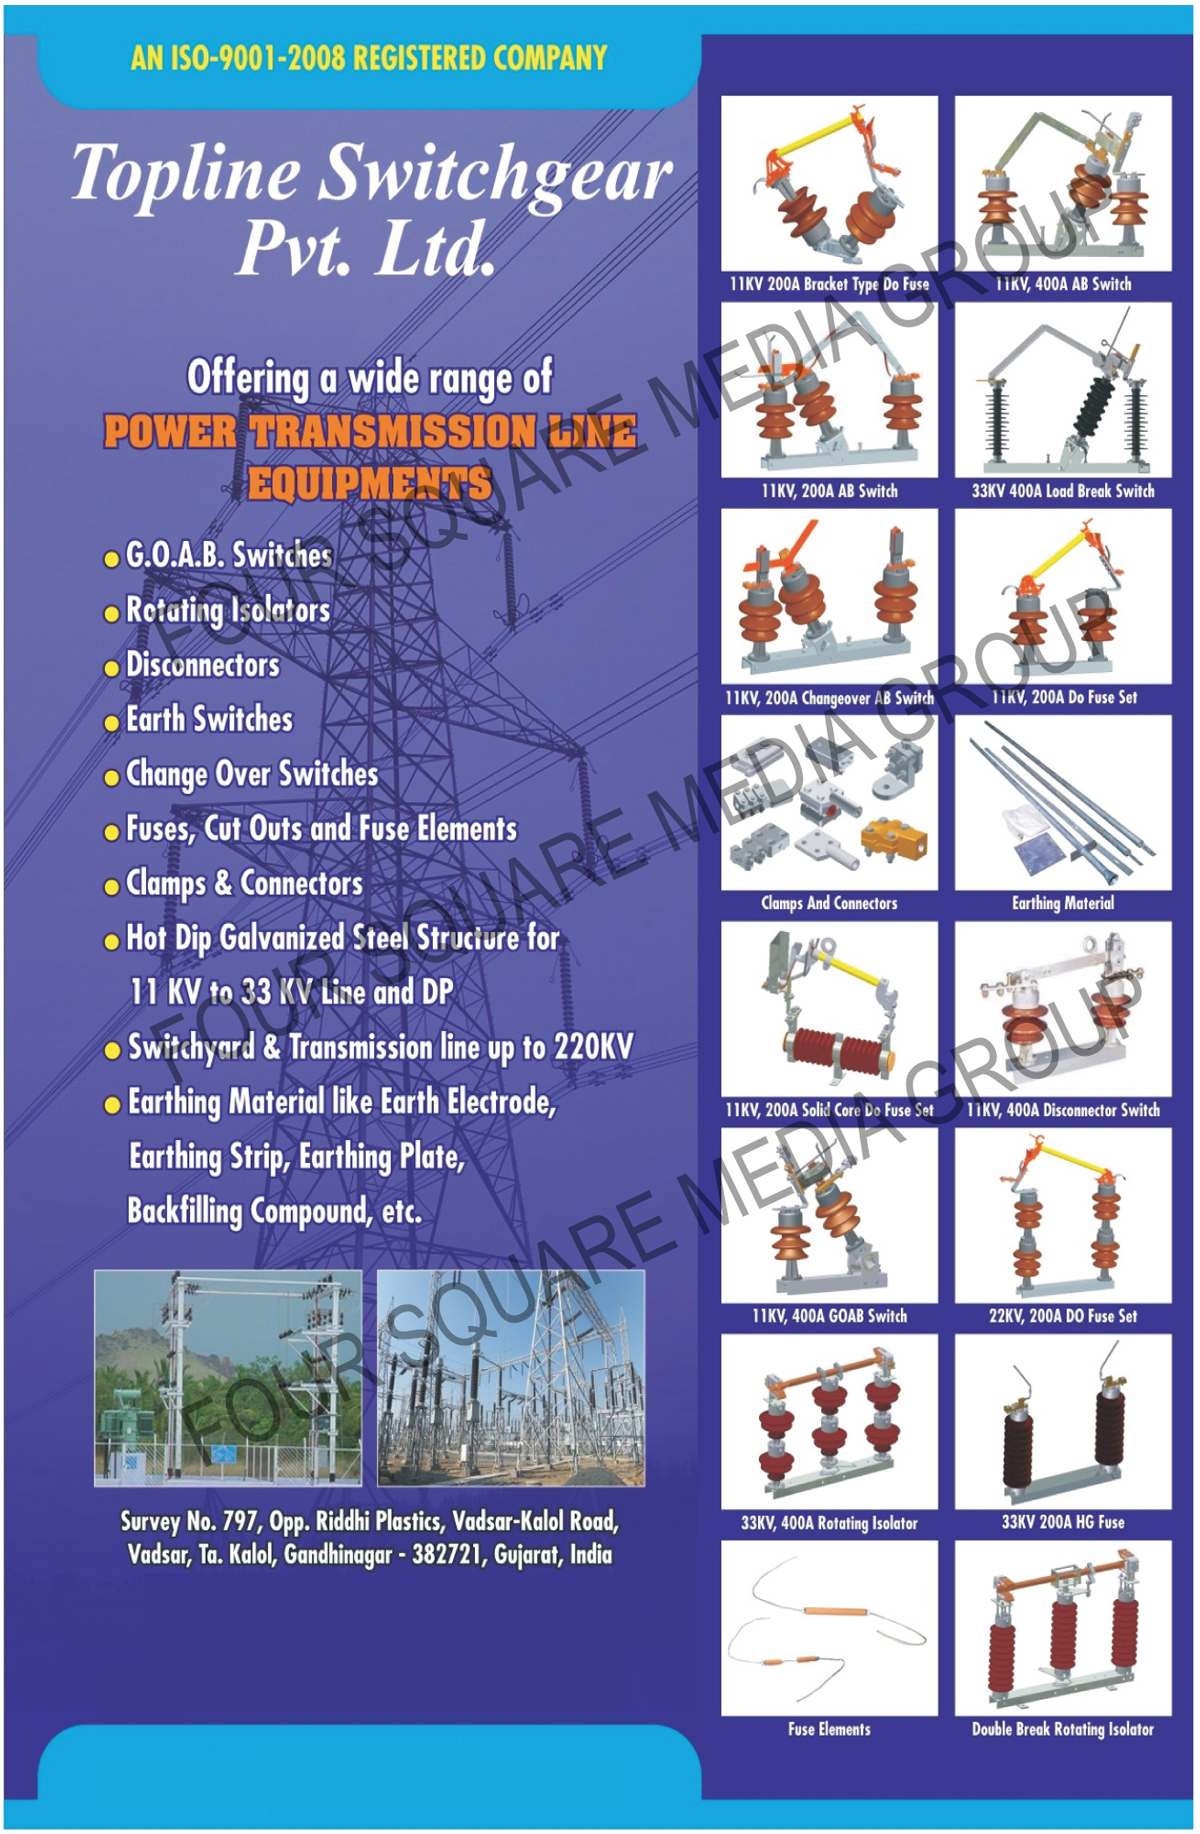 Power Transmission Line Equipments | GOAB Switches